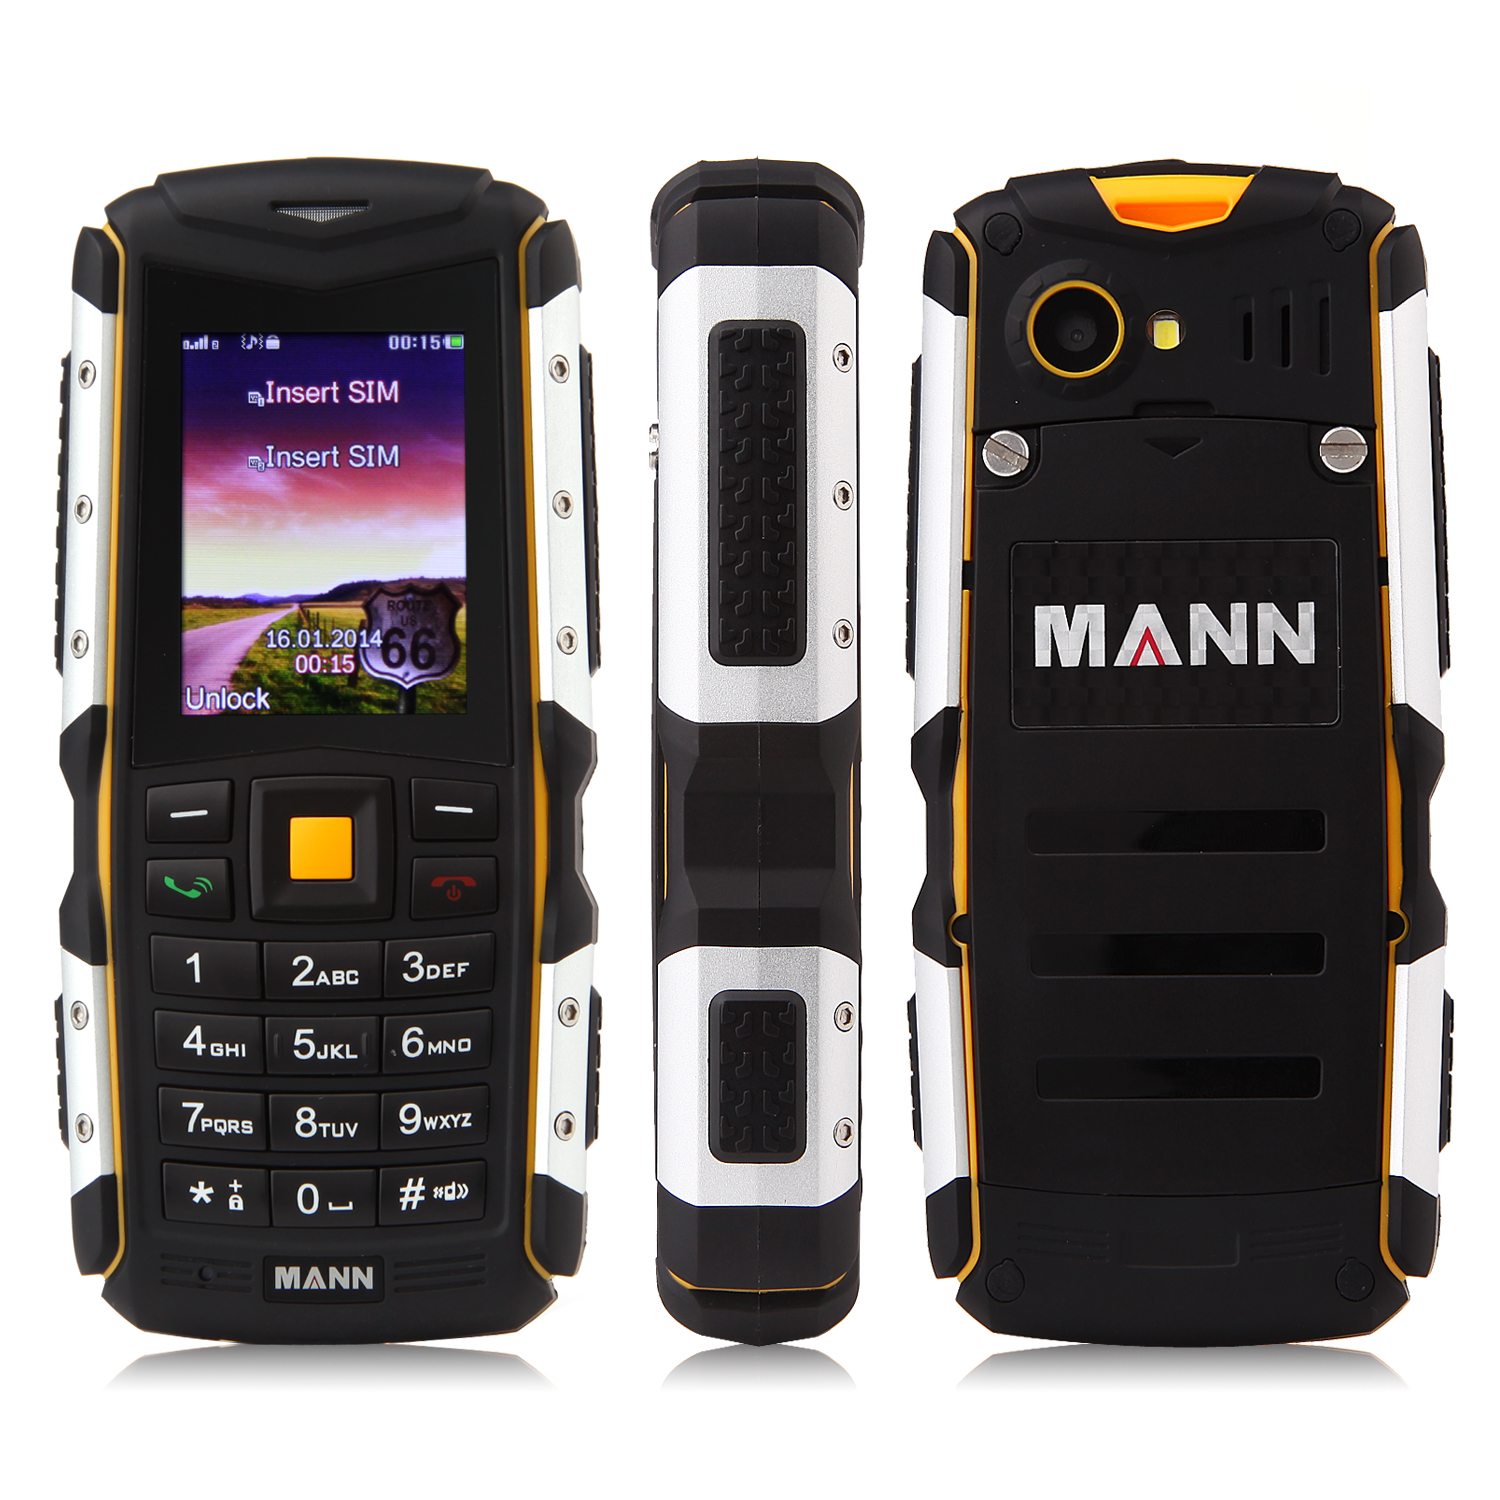 MANN ZUG S Value Phone 2.0 Inch IP67 Dual SIM Card Bluetooth FM Camera Black & Yellow